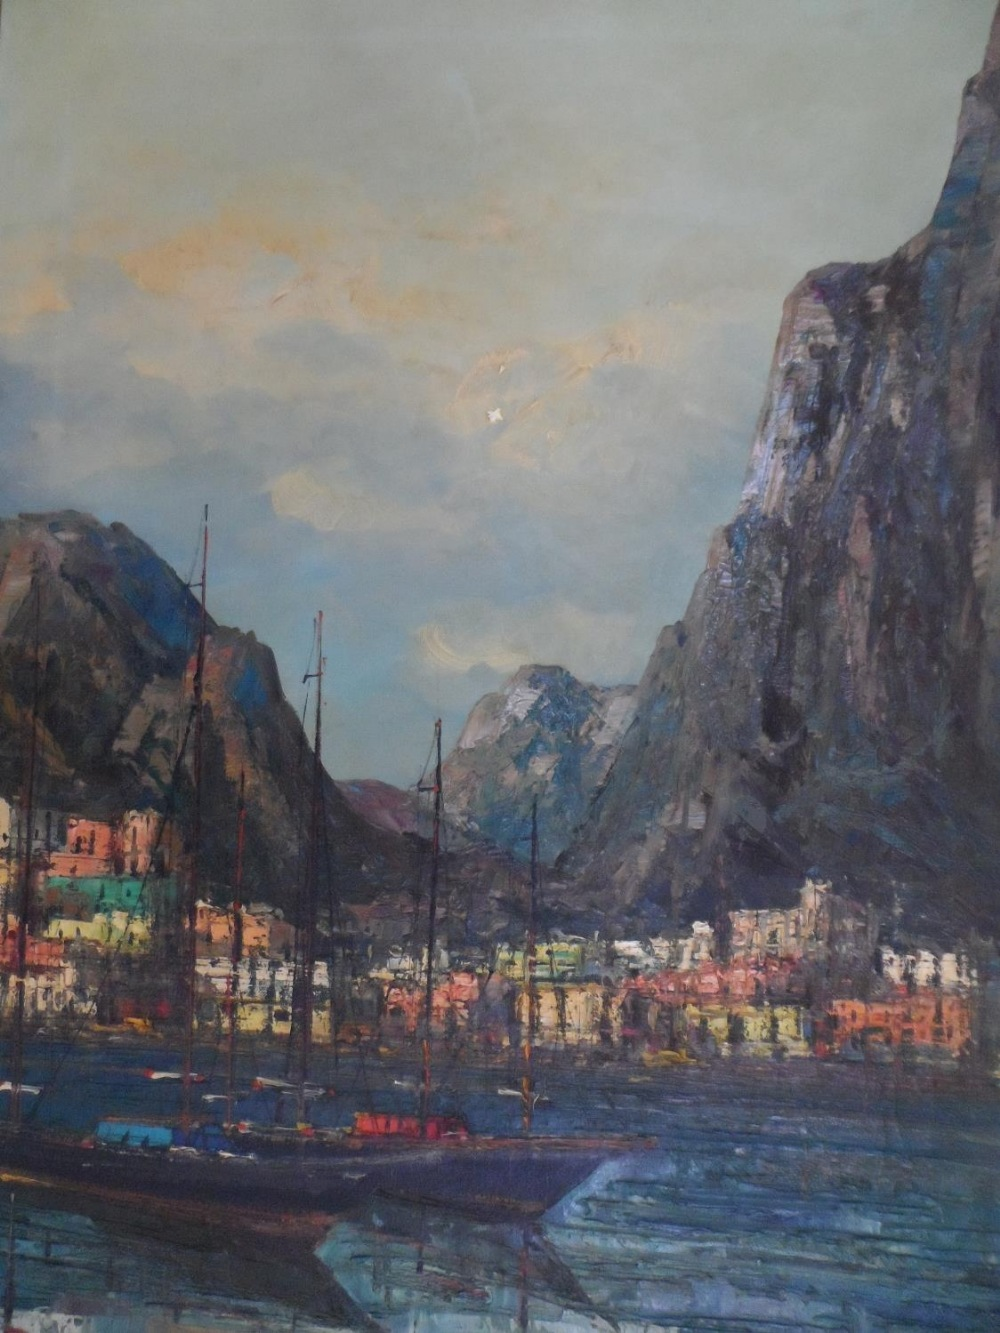 """Large impressionist, 1960s/70s oil on canvas, """"Boats of Mediterranean coast"""" signed CARTIER, framed, - Image 3 of 5"""